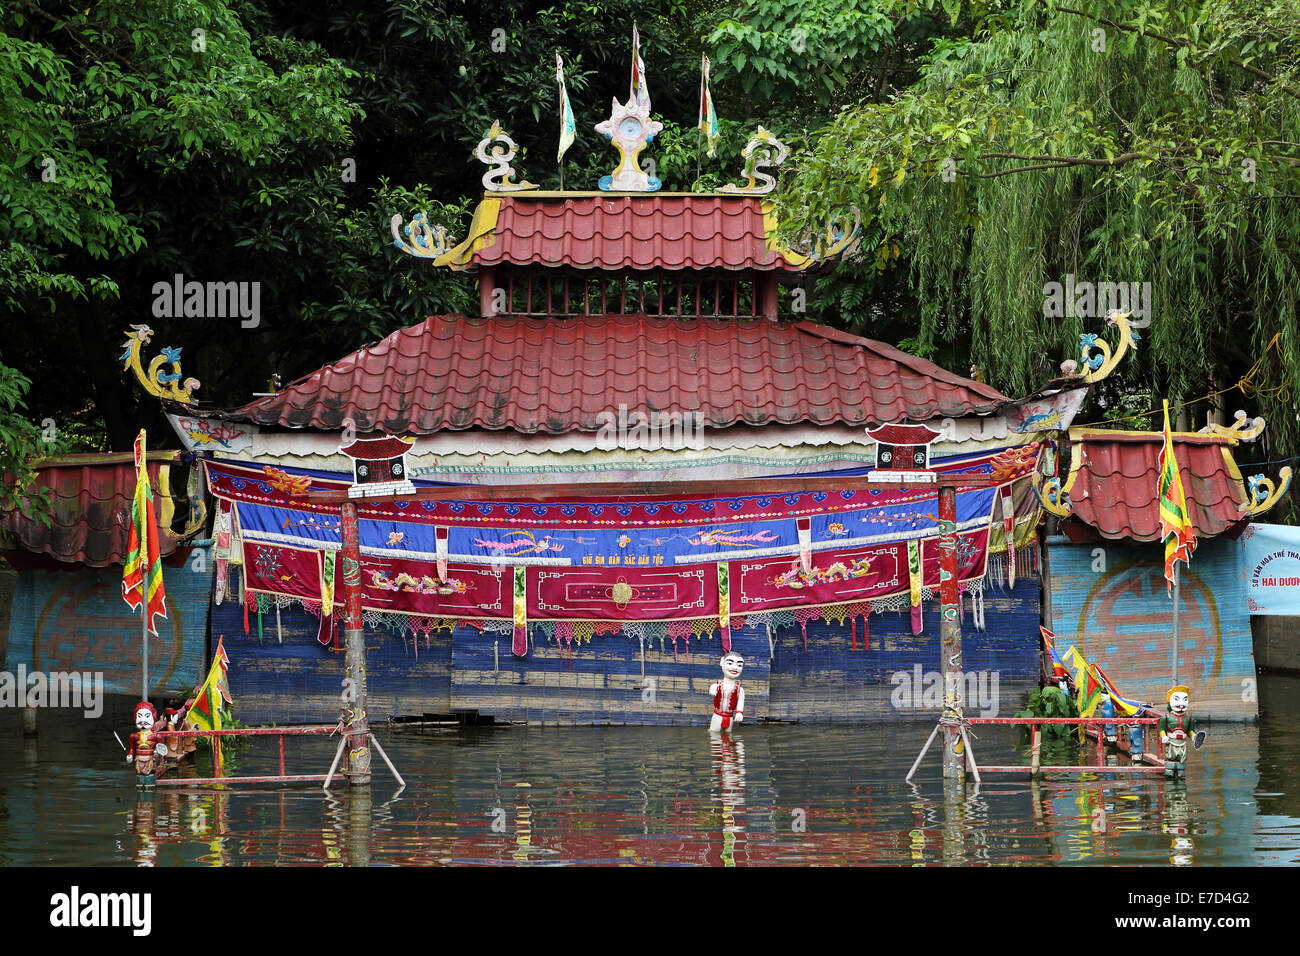 Water puppetry at the Museum of Ethnology in Hanoi, Vietnam. - Stock Image